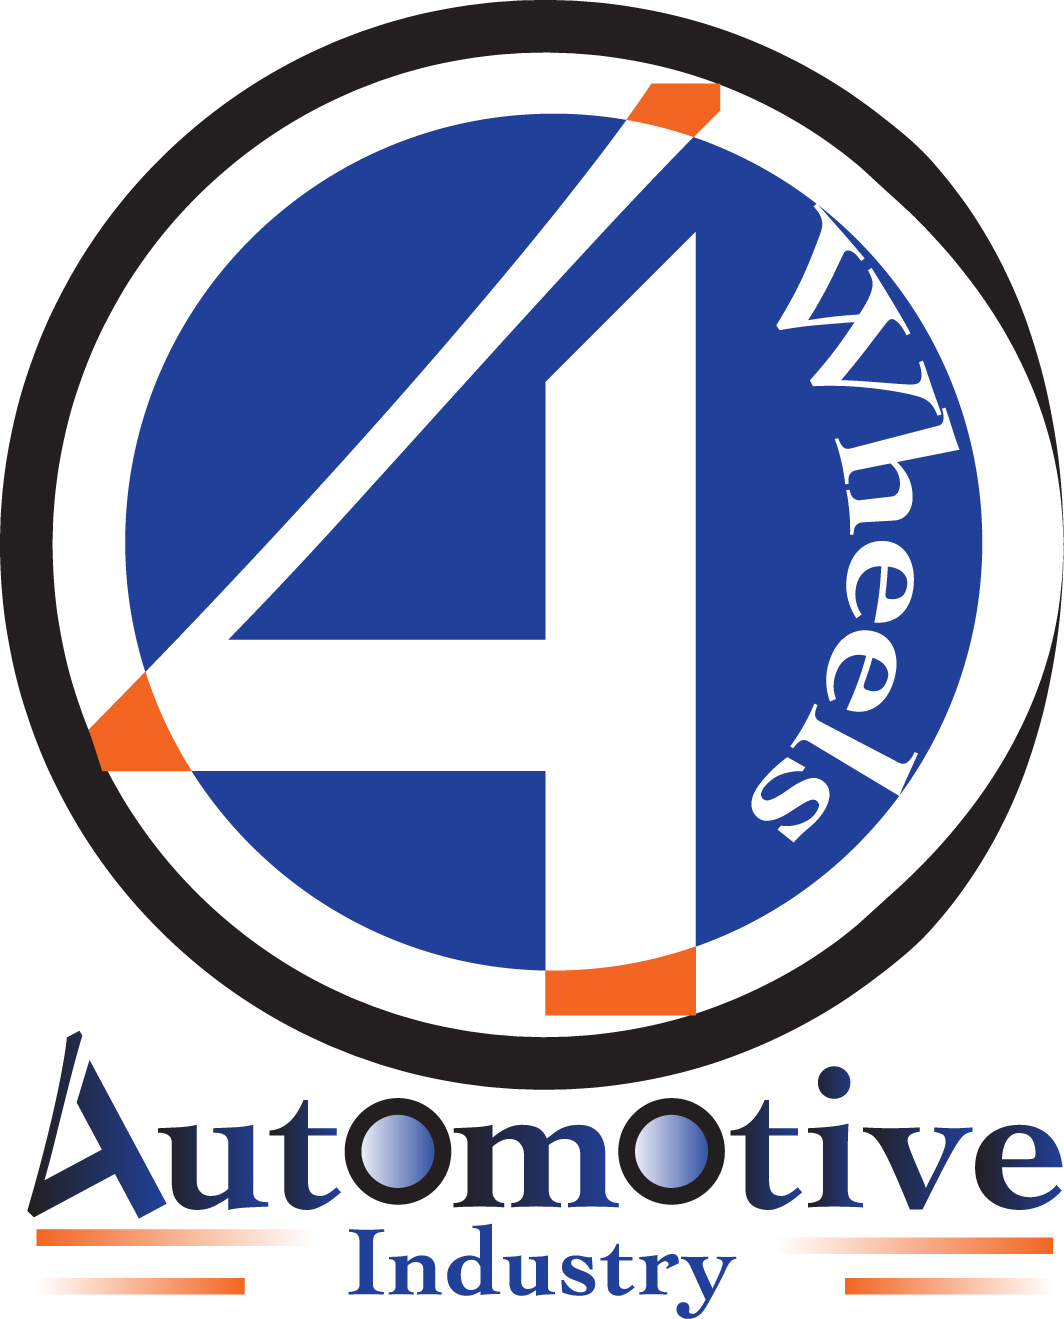 4Wheels Automotive Industry